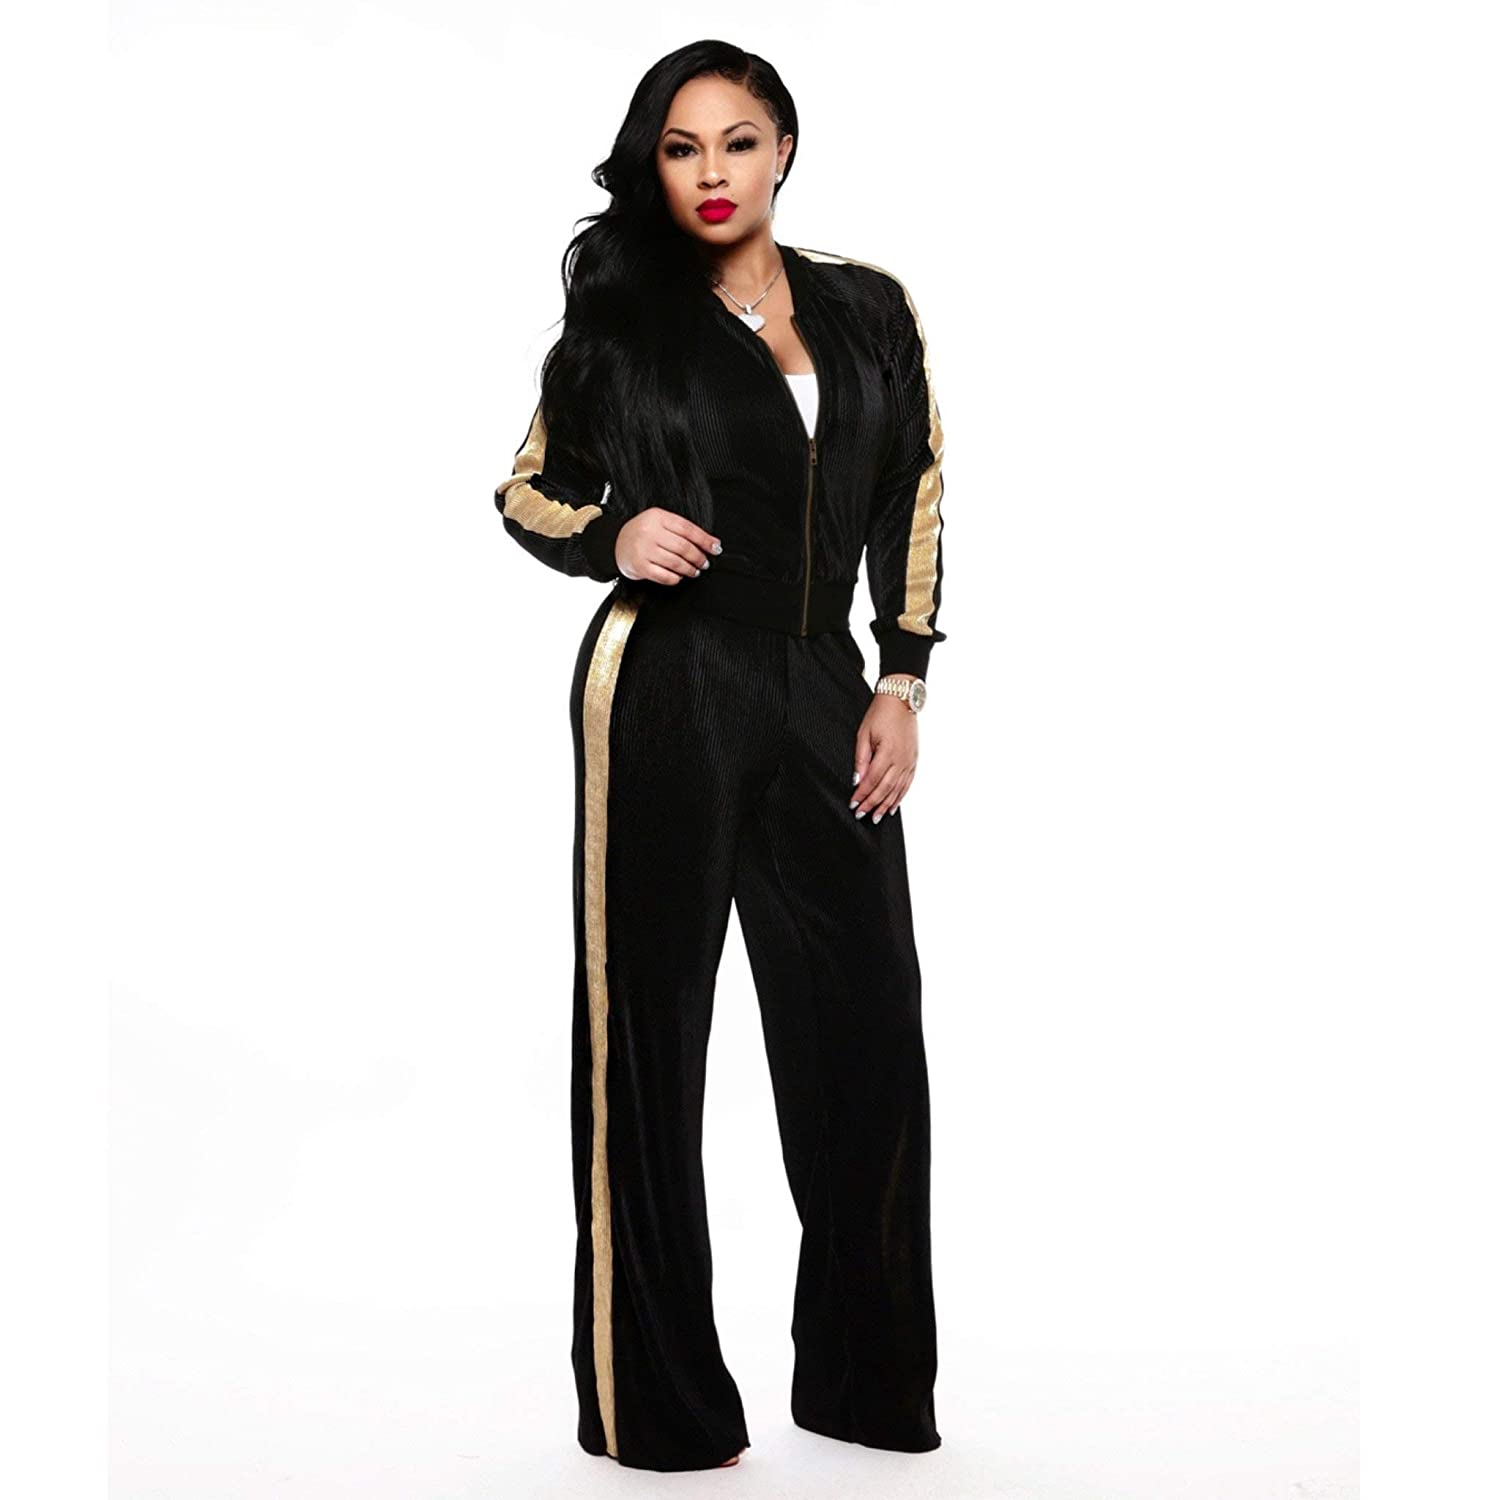 2d8a646b OLUOLIN Women's 2 Piece Outfits Velvet Tracksuit Zip Jackets and Sweatpants  Jogging Suit at Amazon Women's Clothing store: